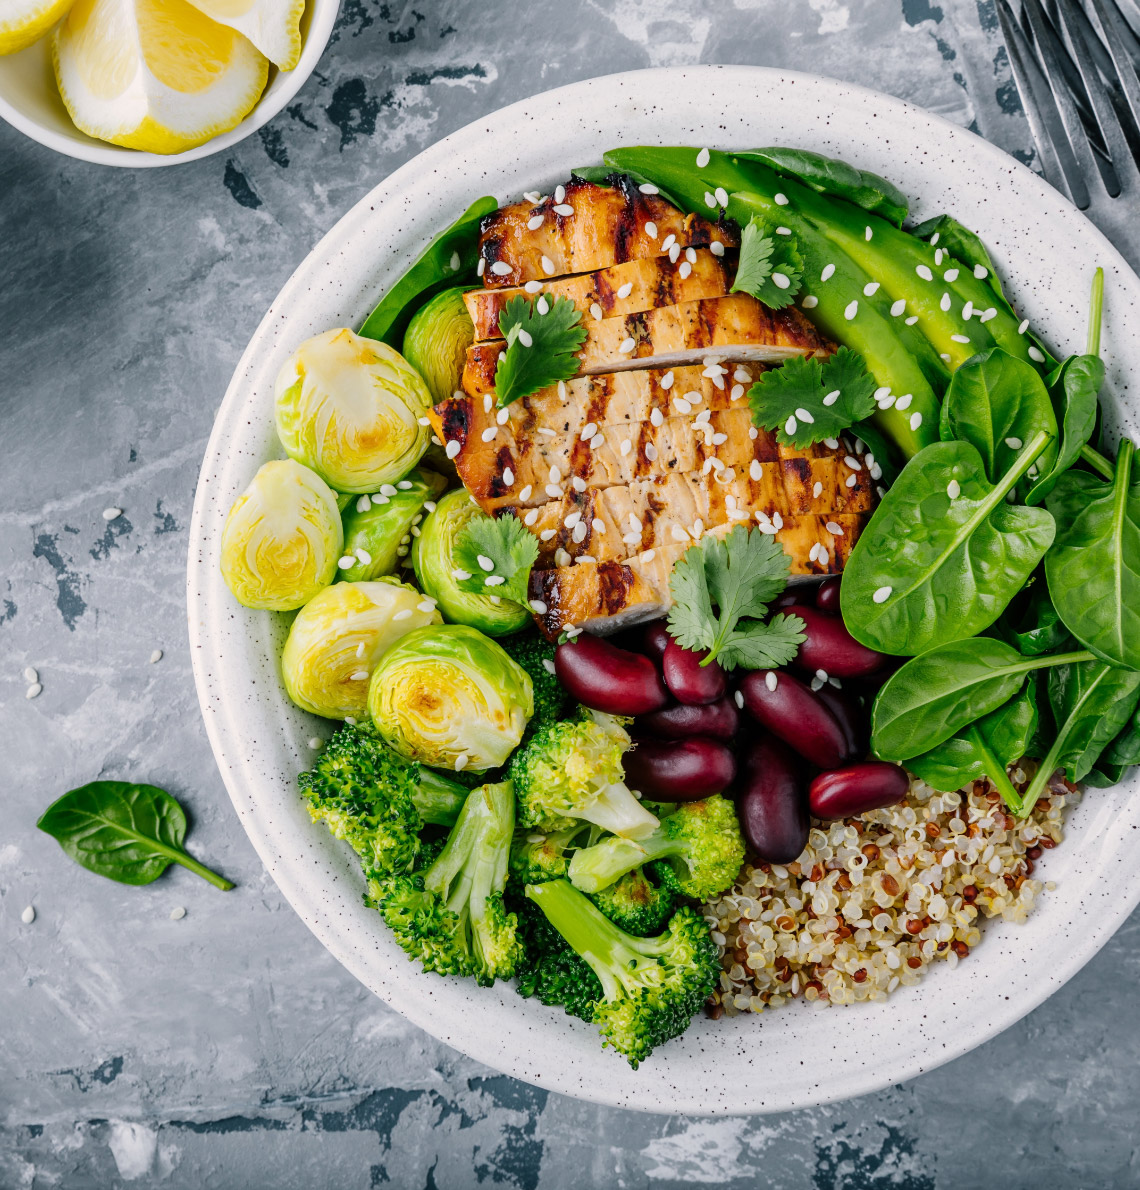 Vegetable bowl with quinoa, beans, and grilled chicken